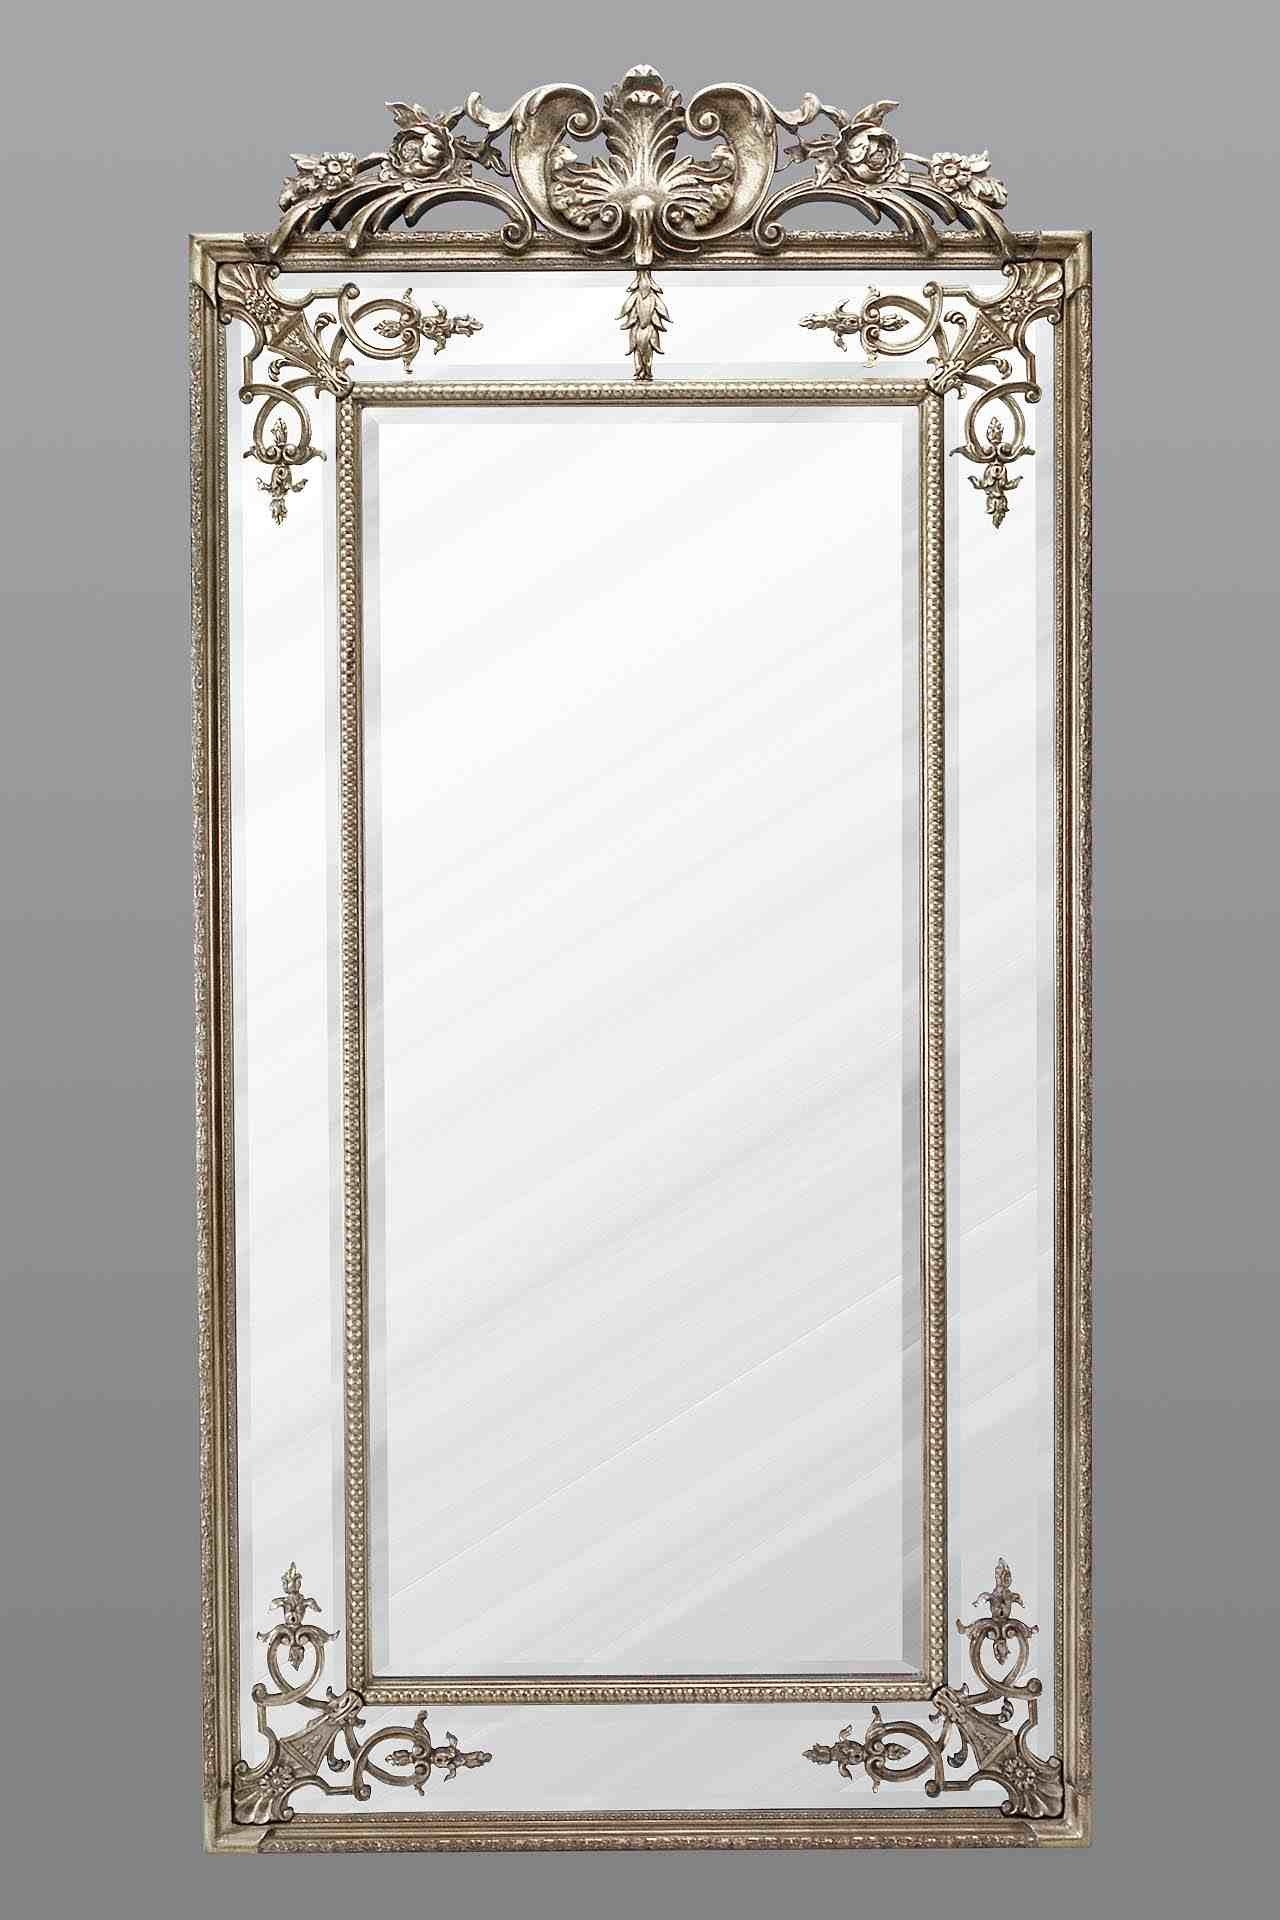 Large Full Length Mirror Silver Regarding Full Length Silver Mirror (Image 10 of 15)